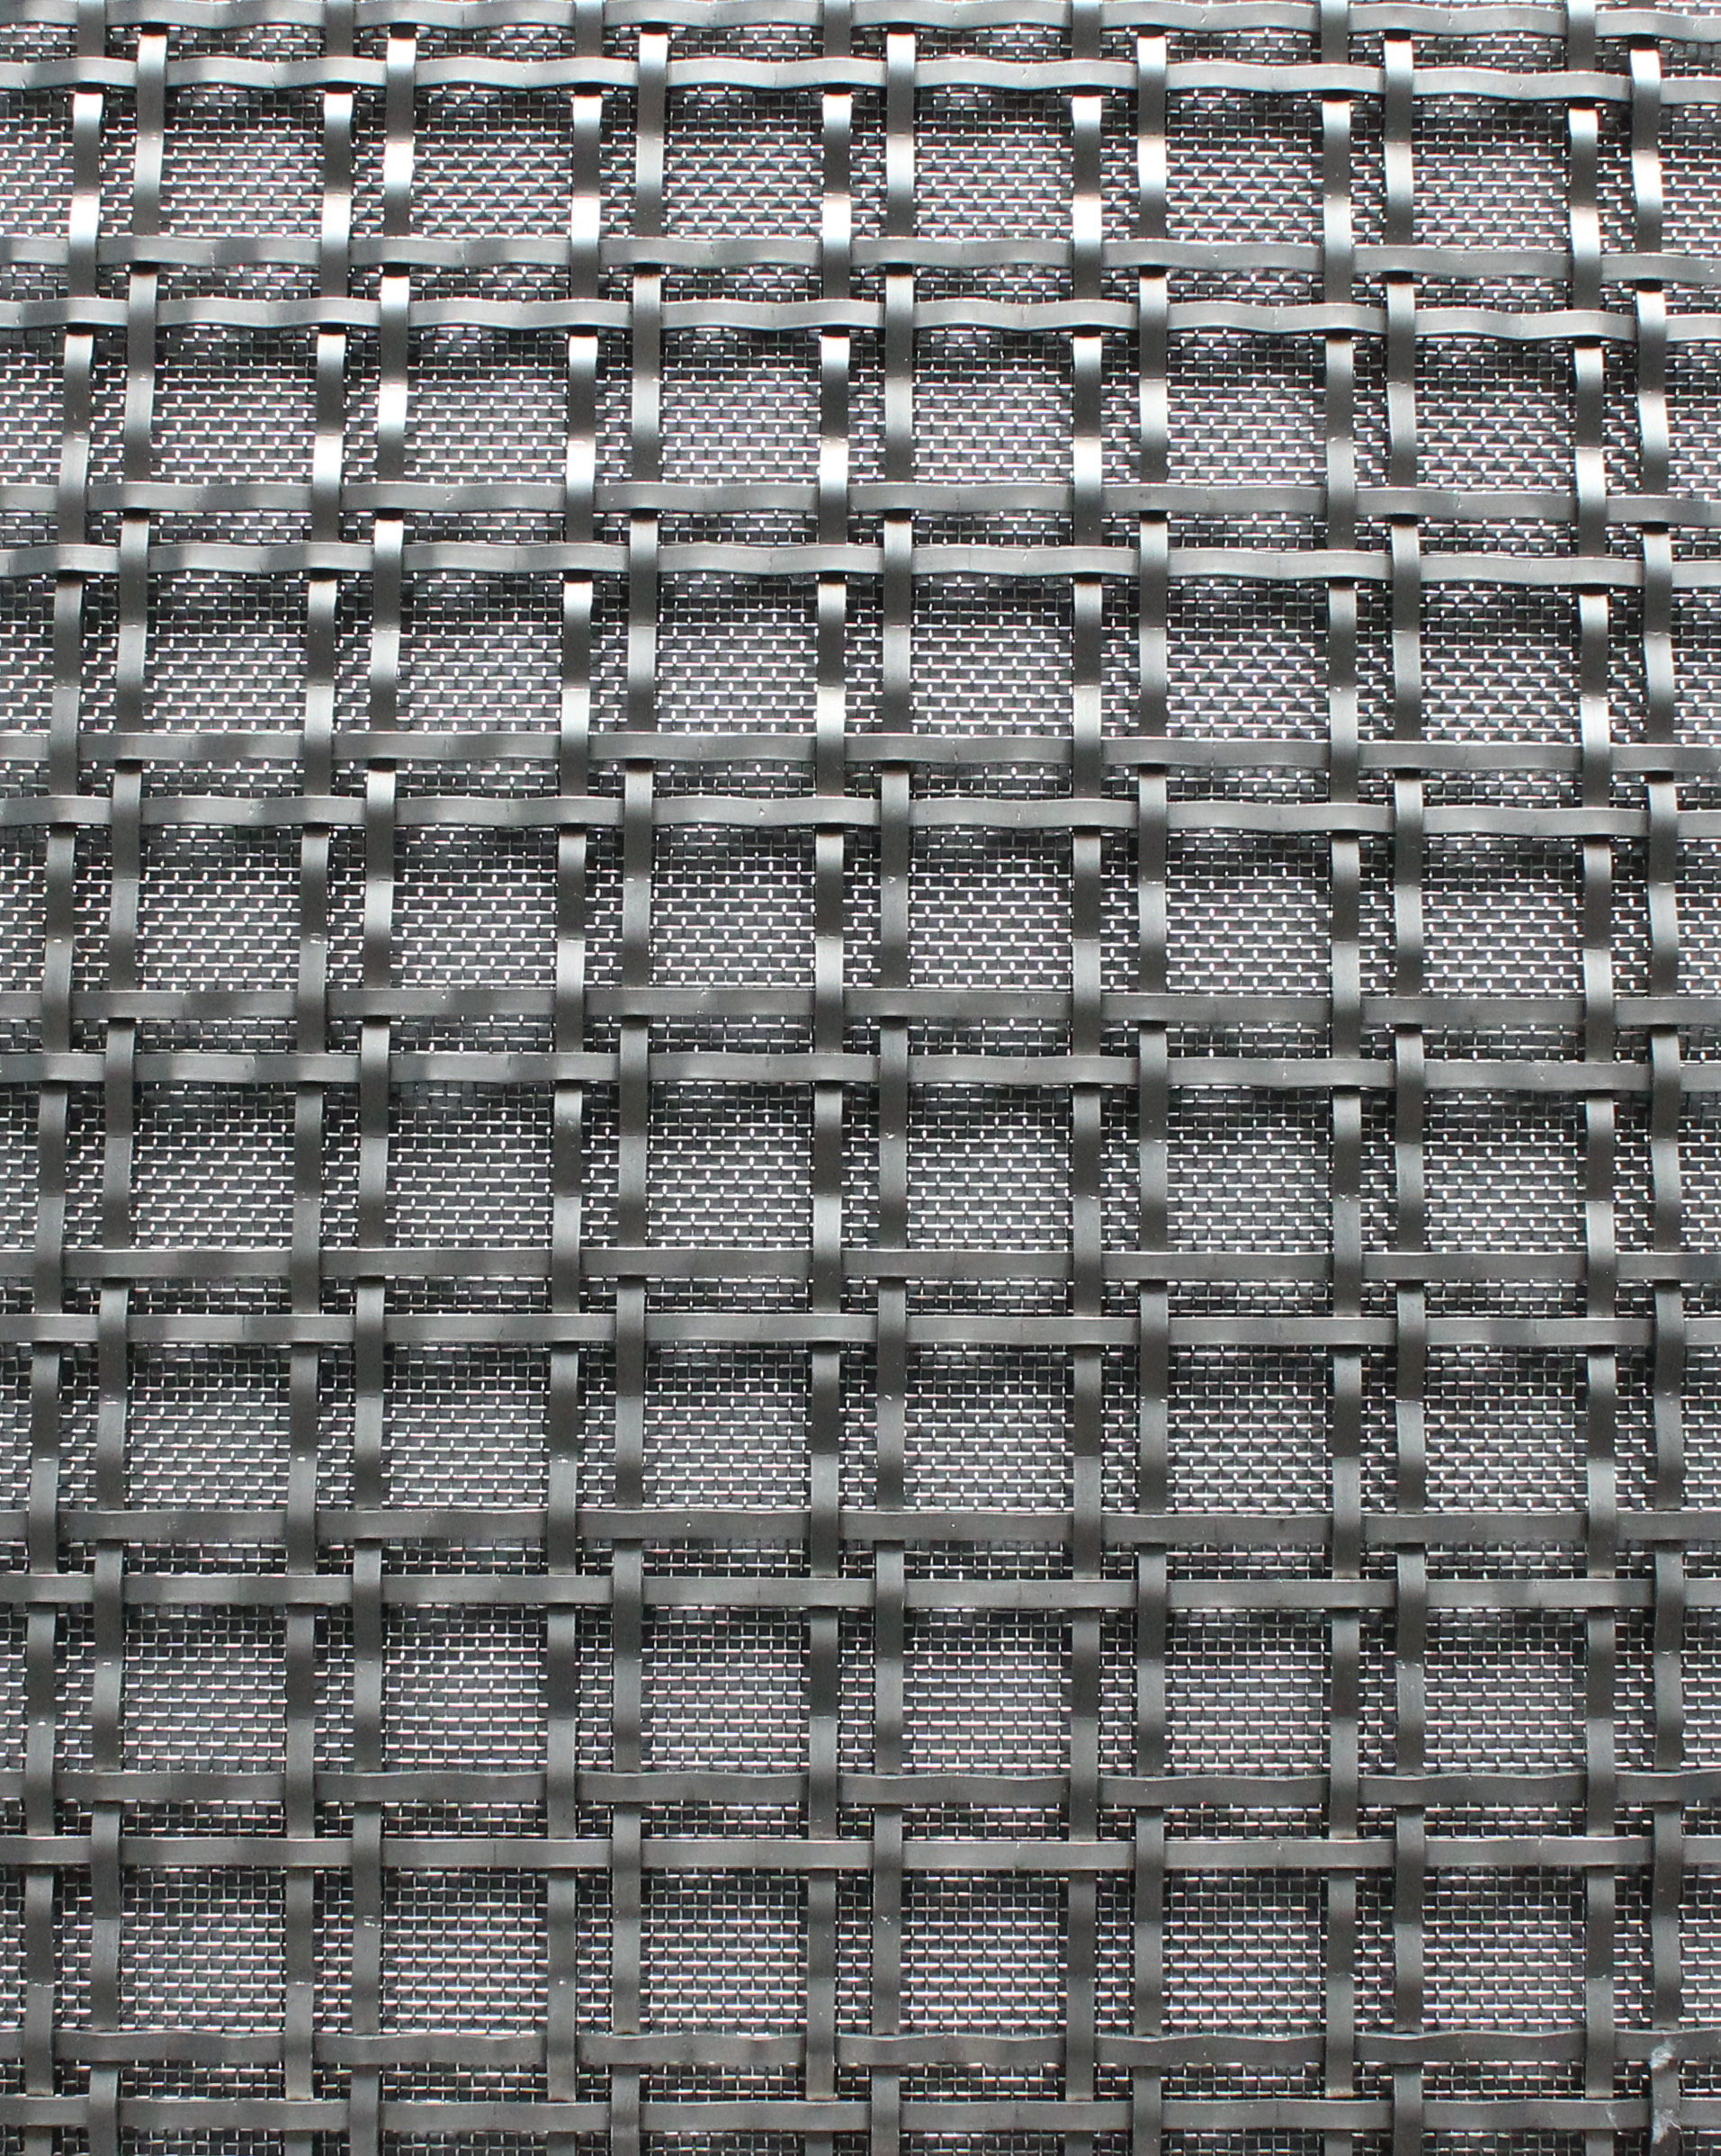 Double Interwoven Grille